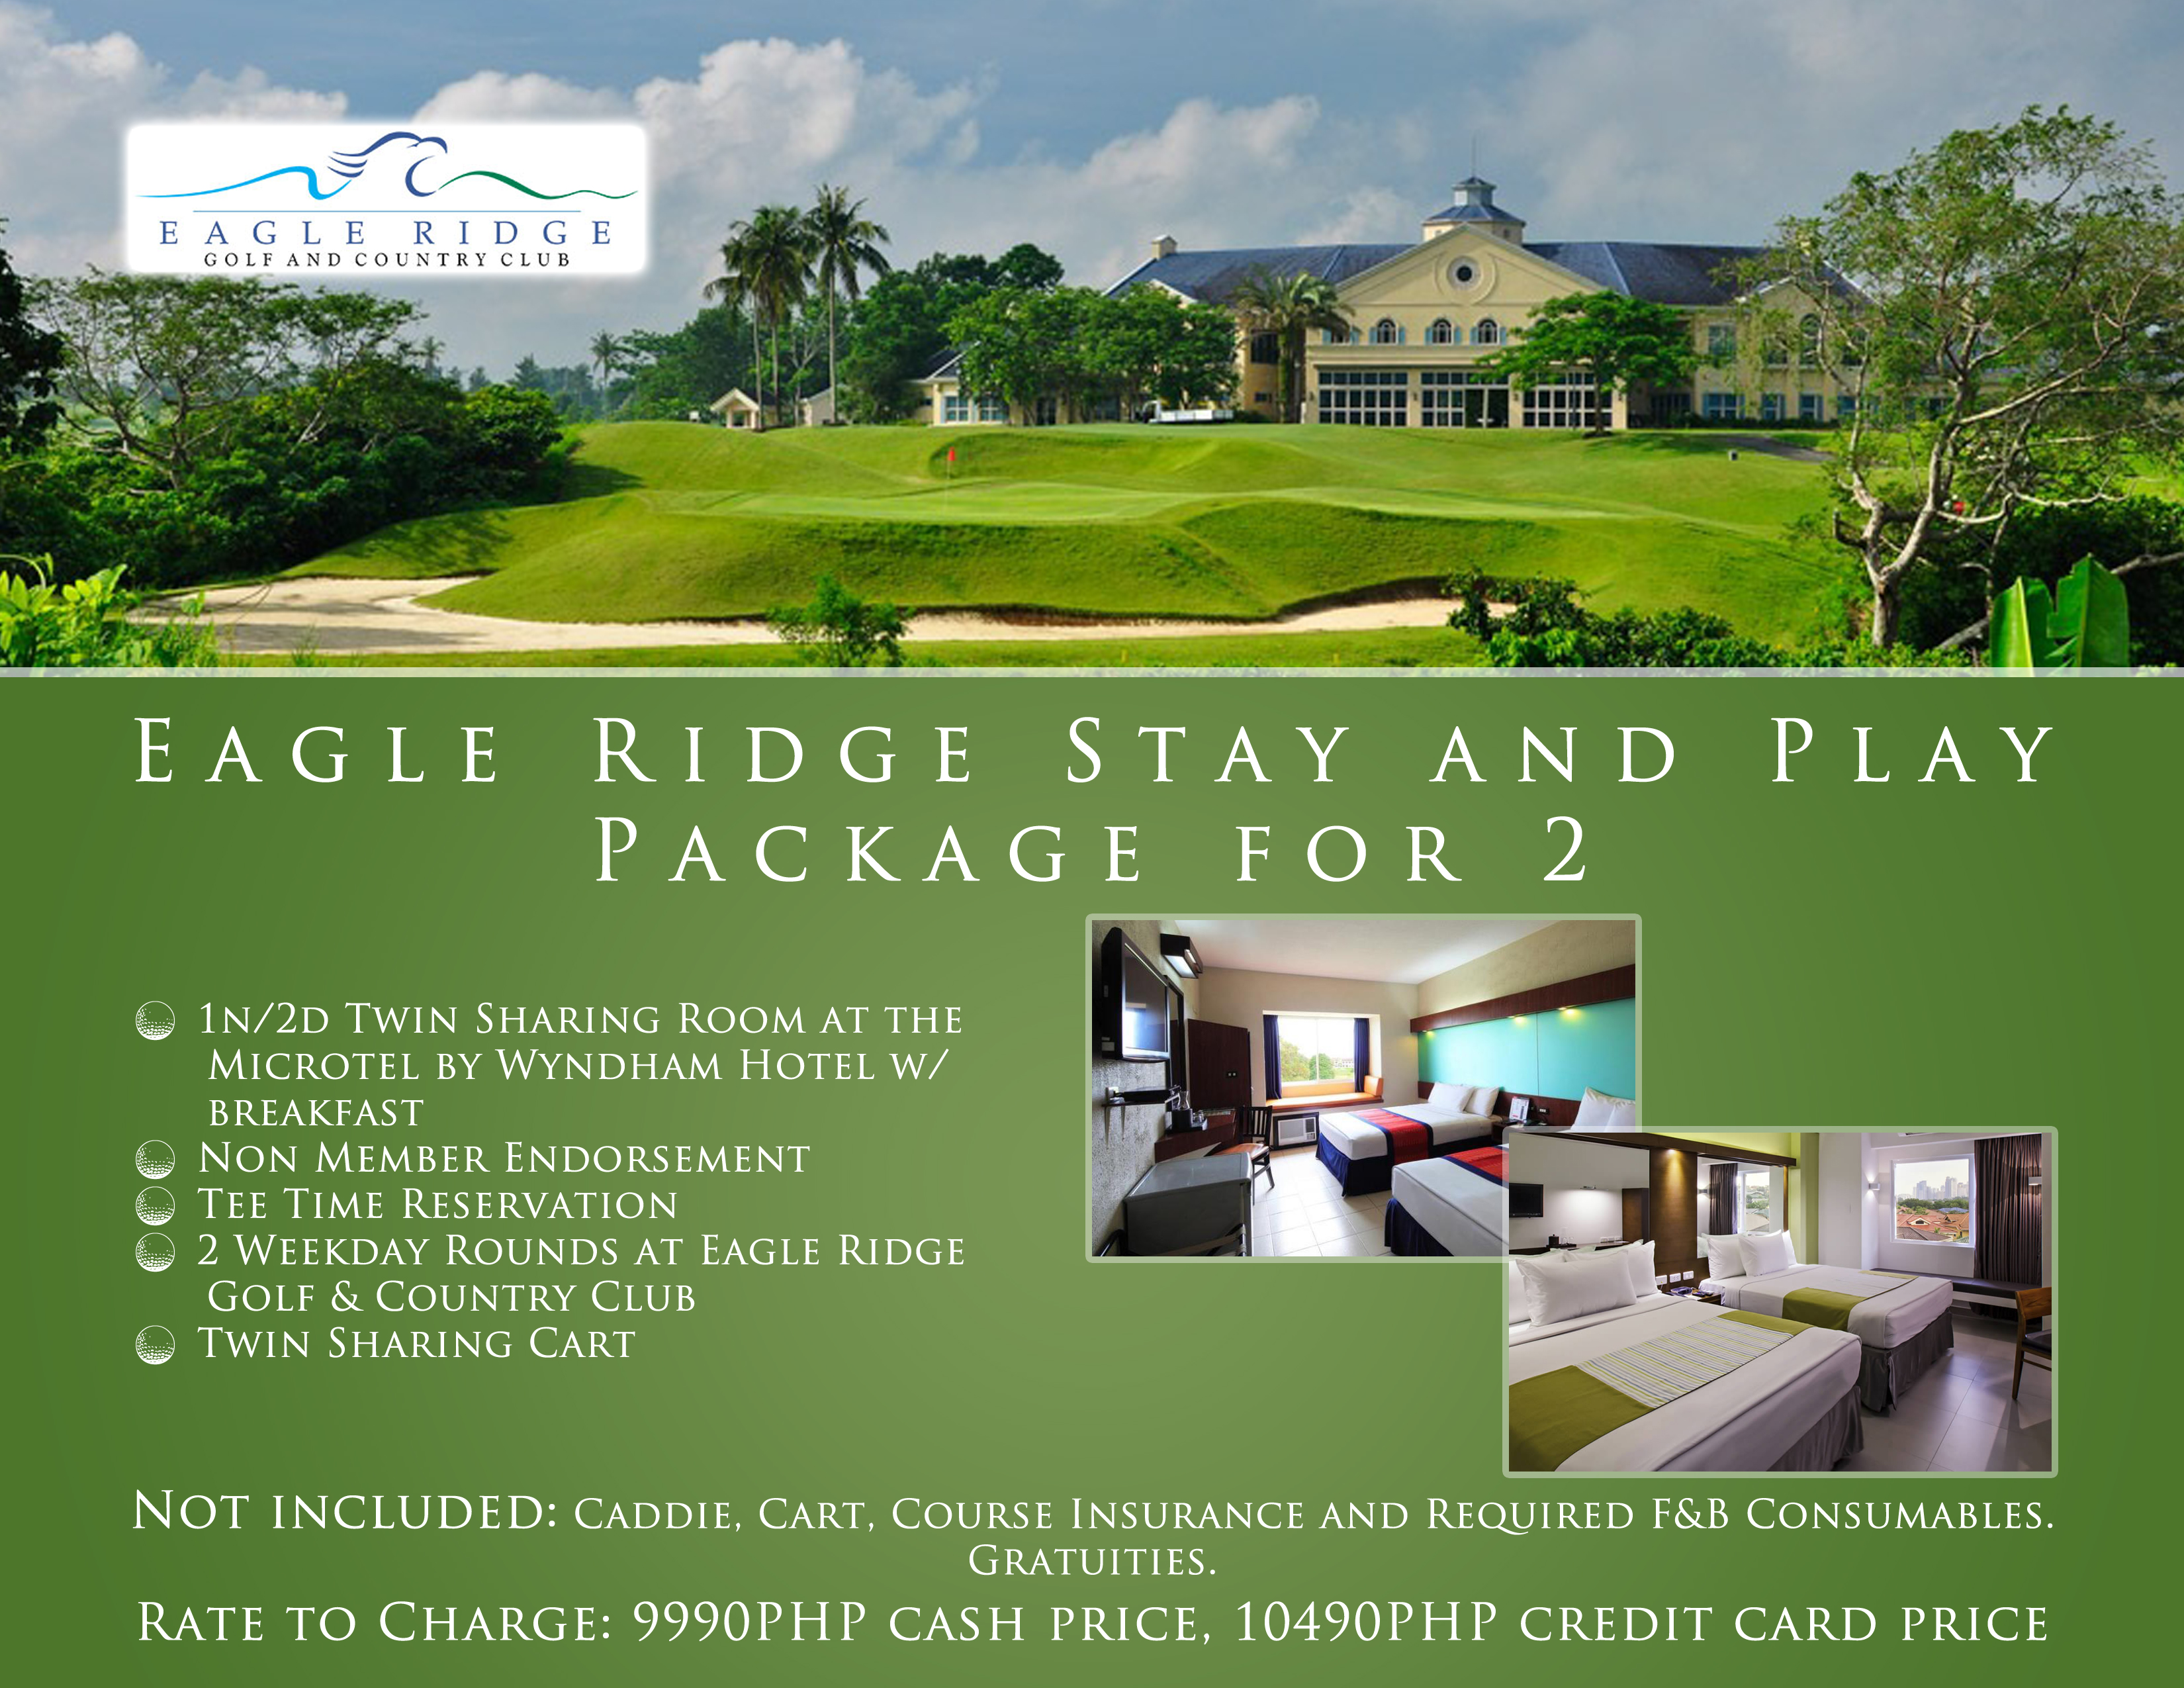 Offer #1 - Eagle Ridge Stay and Play Package for 2